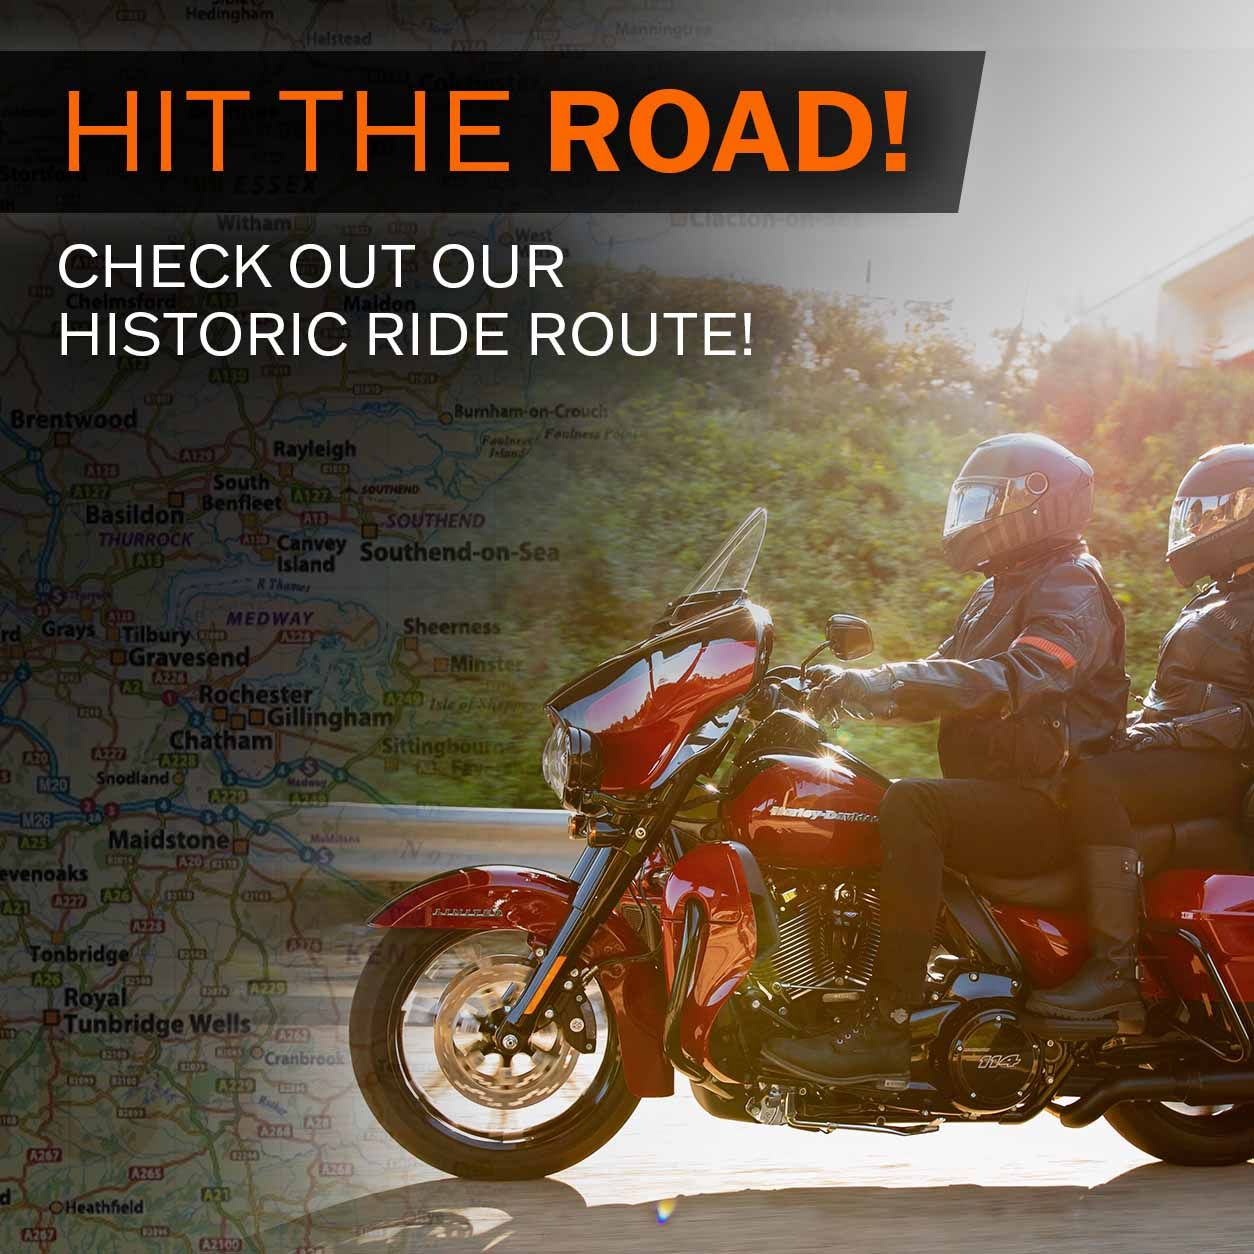 Maidstone Harley-Davidson Ride Route Recommendation